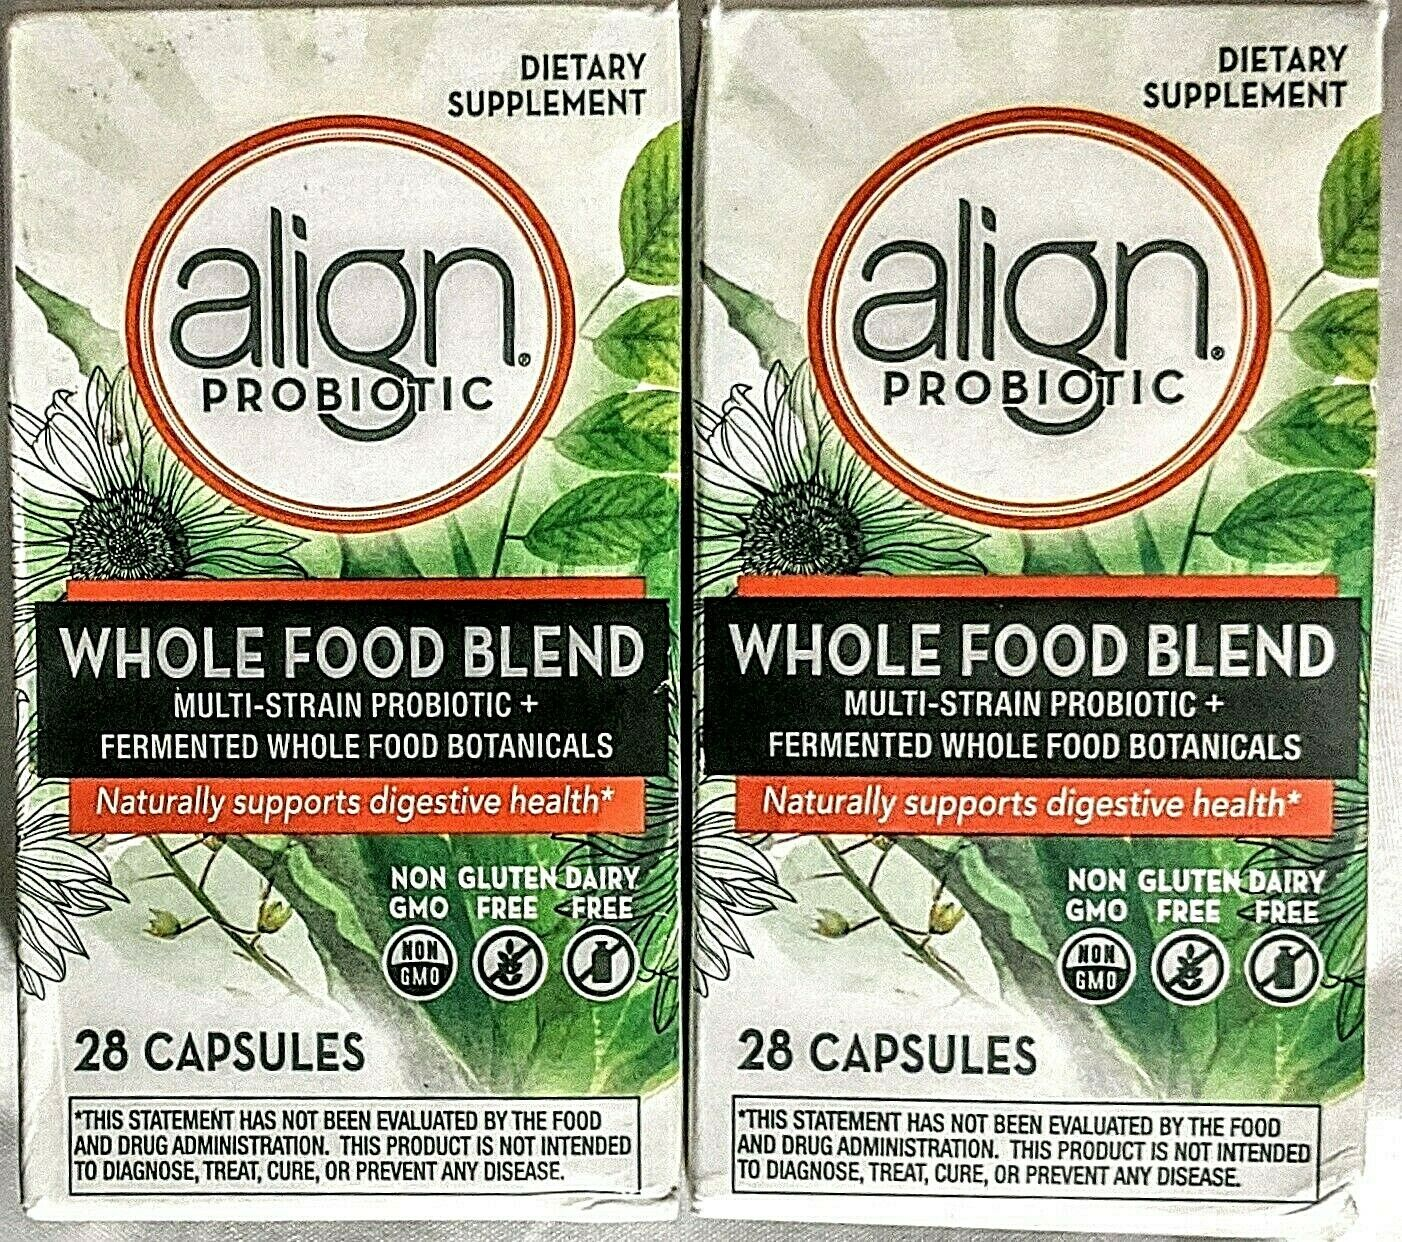 Align Whole Food Blend Multi-Strain Probiotic Supplement Mad